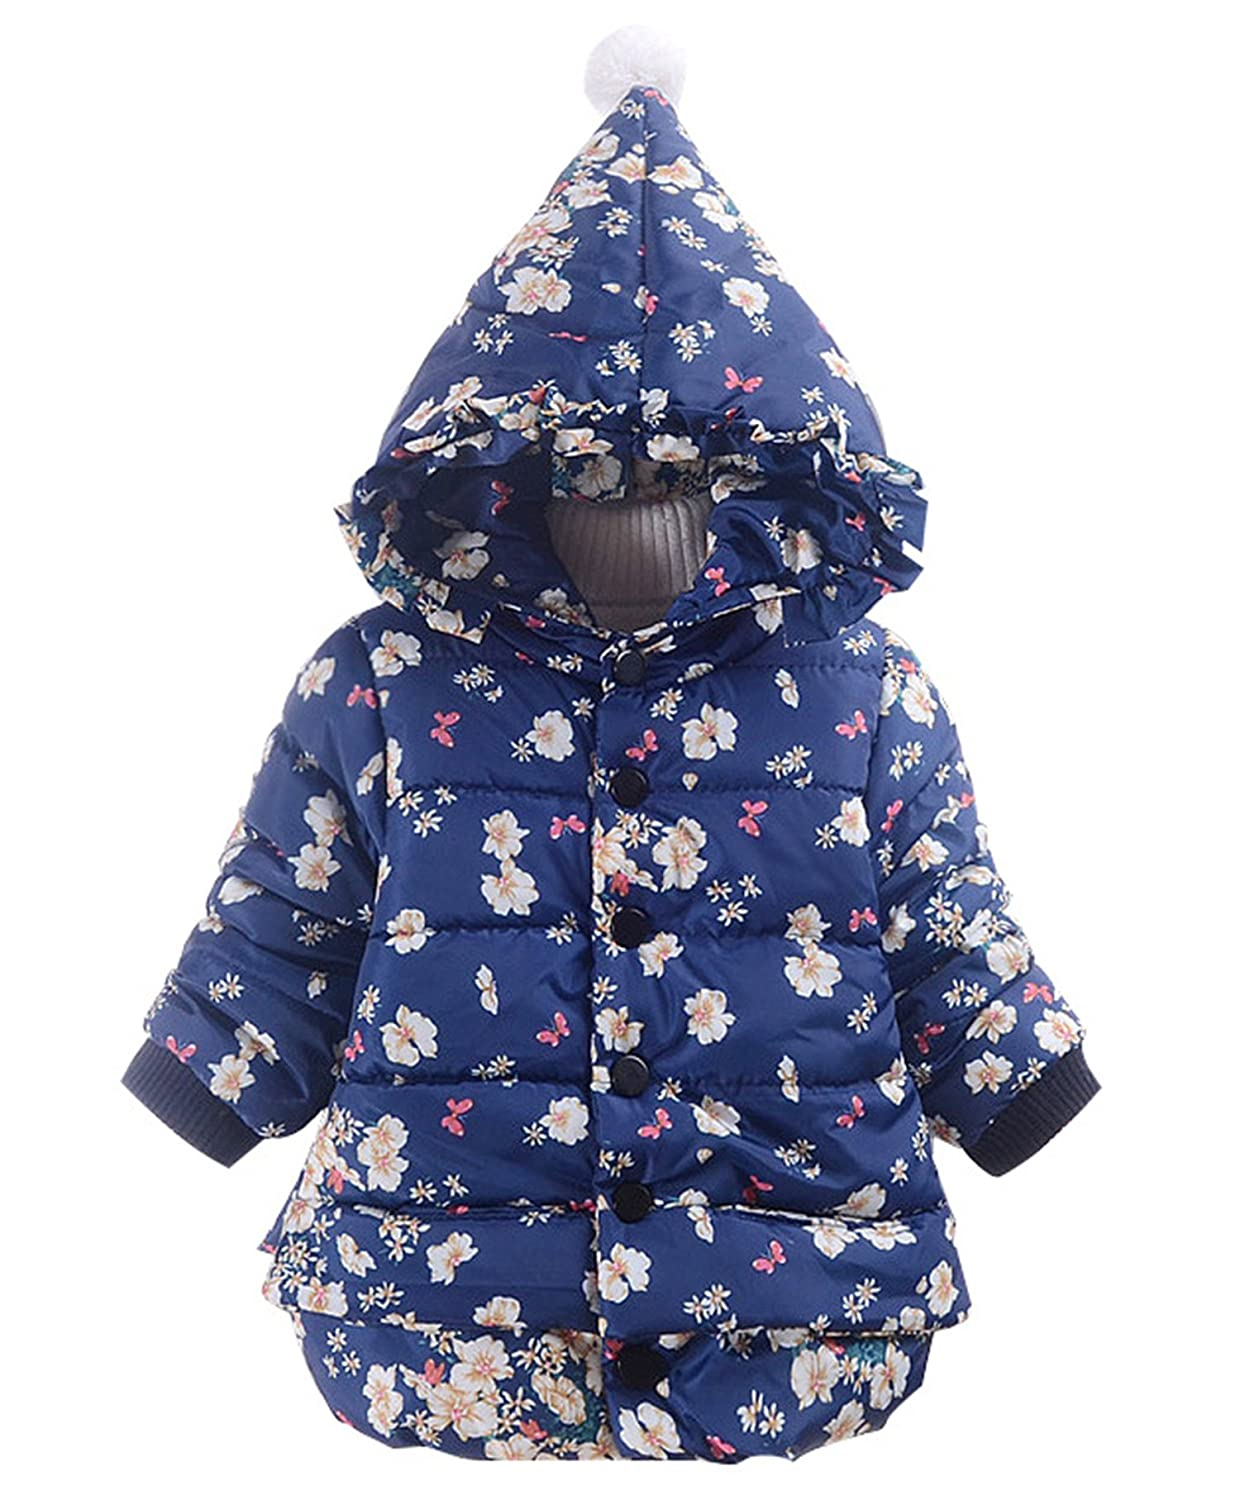 Baby Girls Floral Print Toddler Winter Cotton Padded Jacket Kids Hooded Outwear Coat